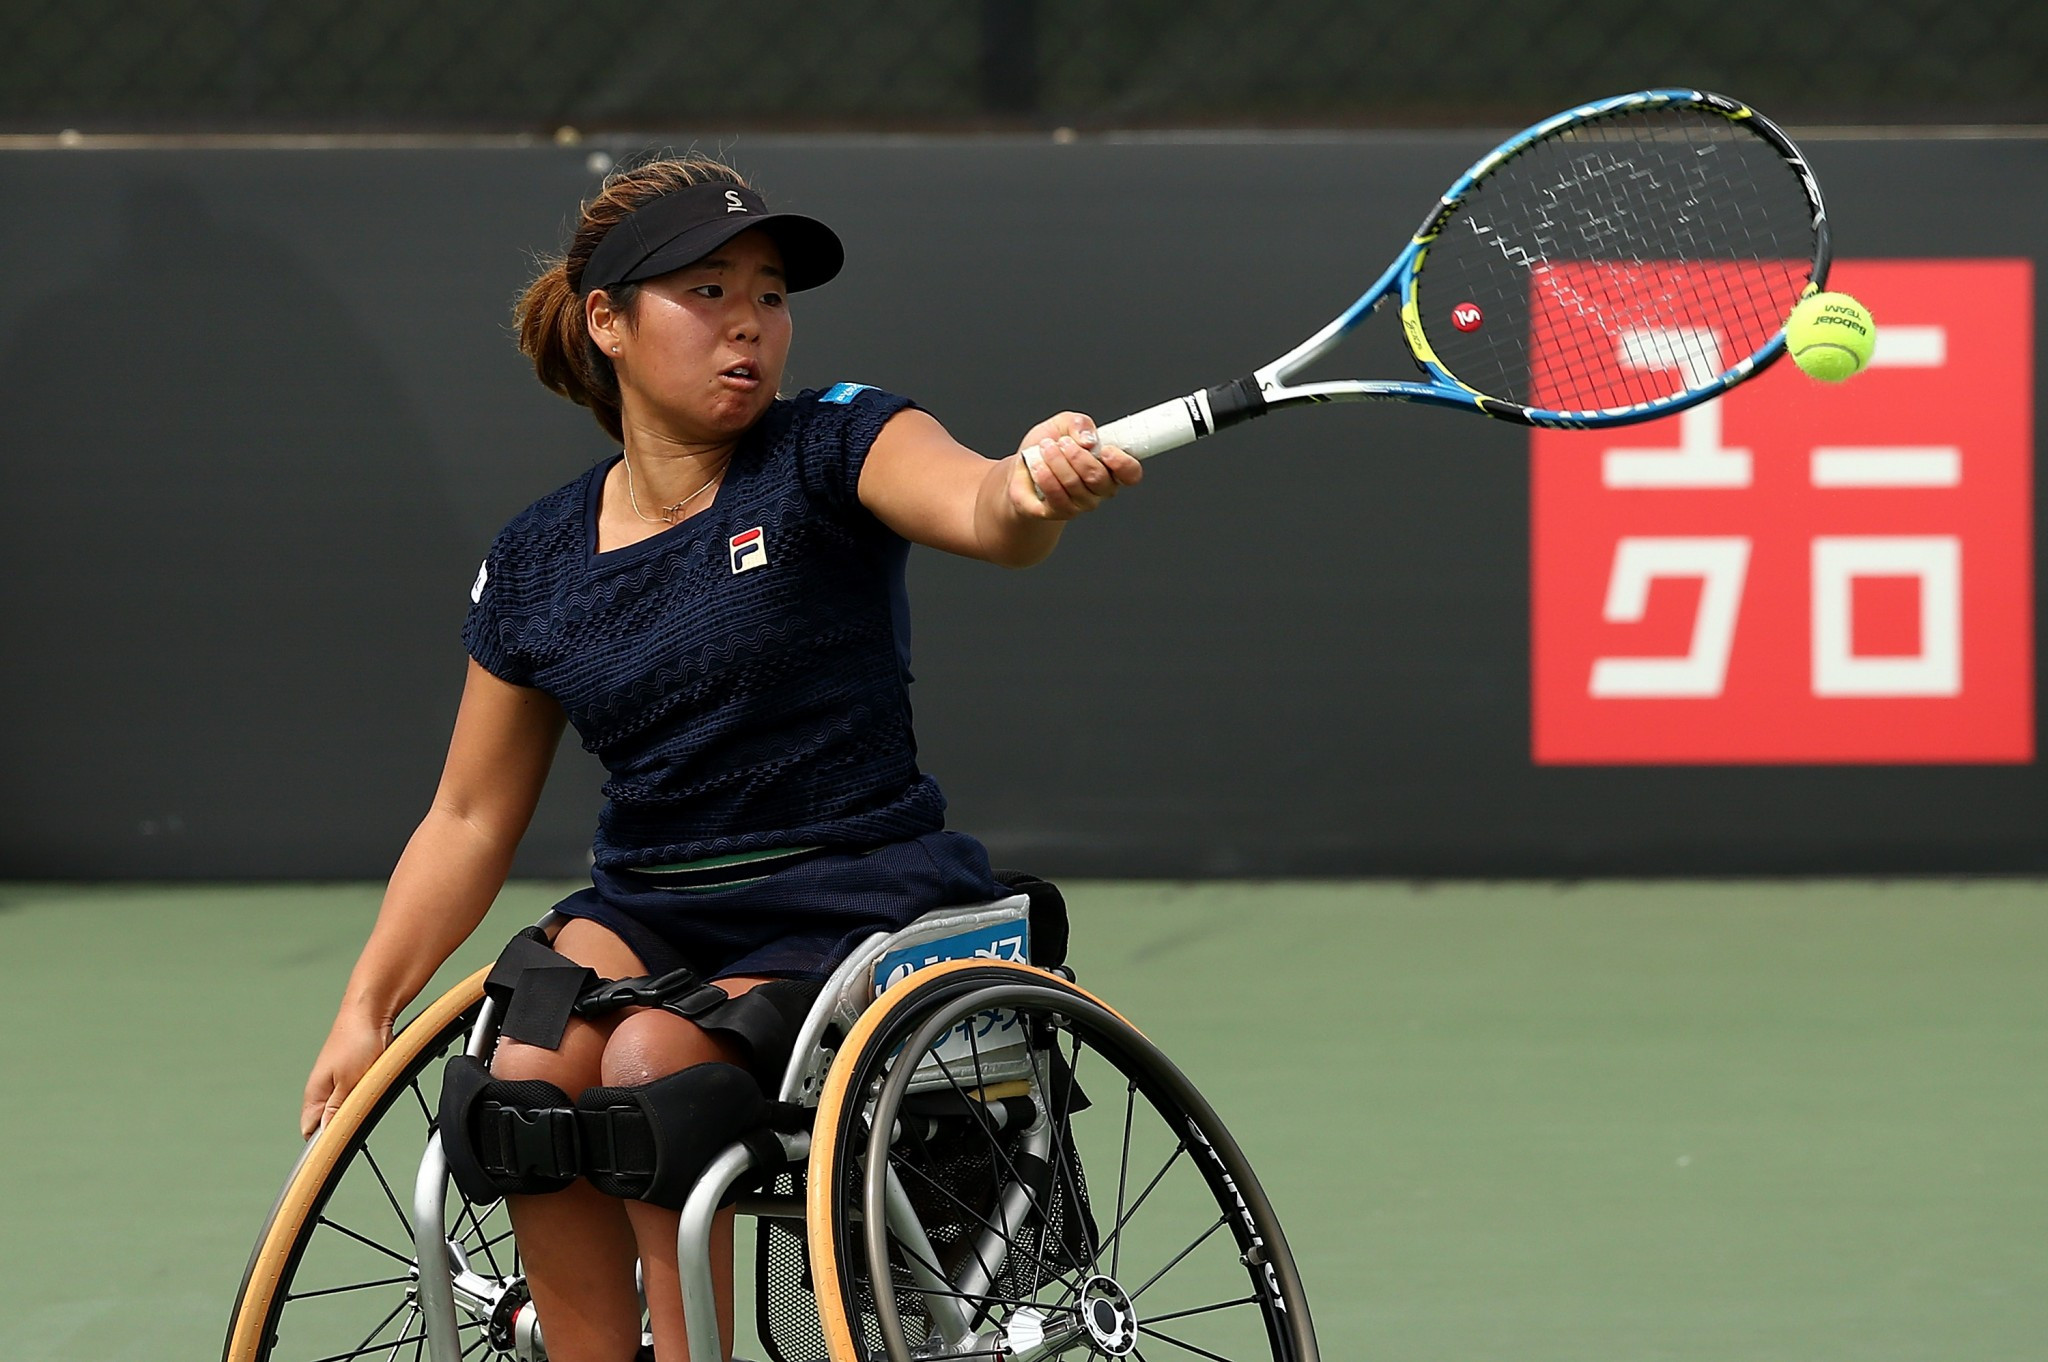 World number one Yui Kamiji of Japan is through to the women's singles final ©Getty Images